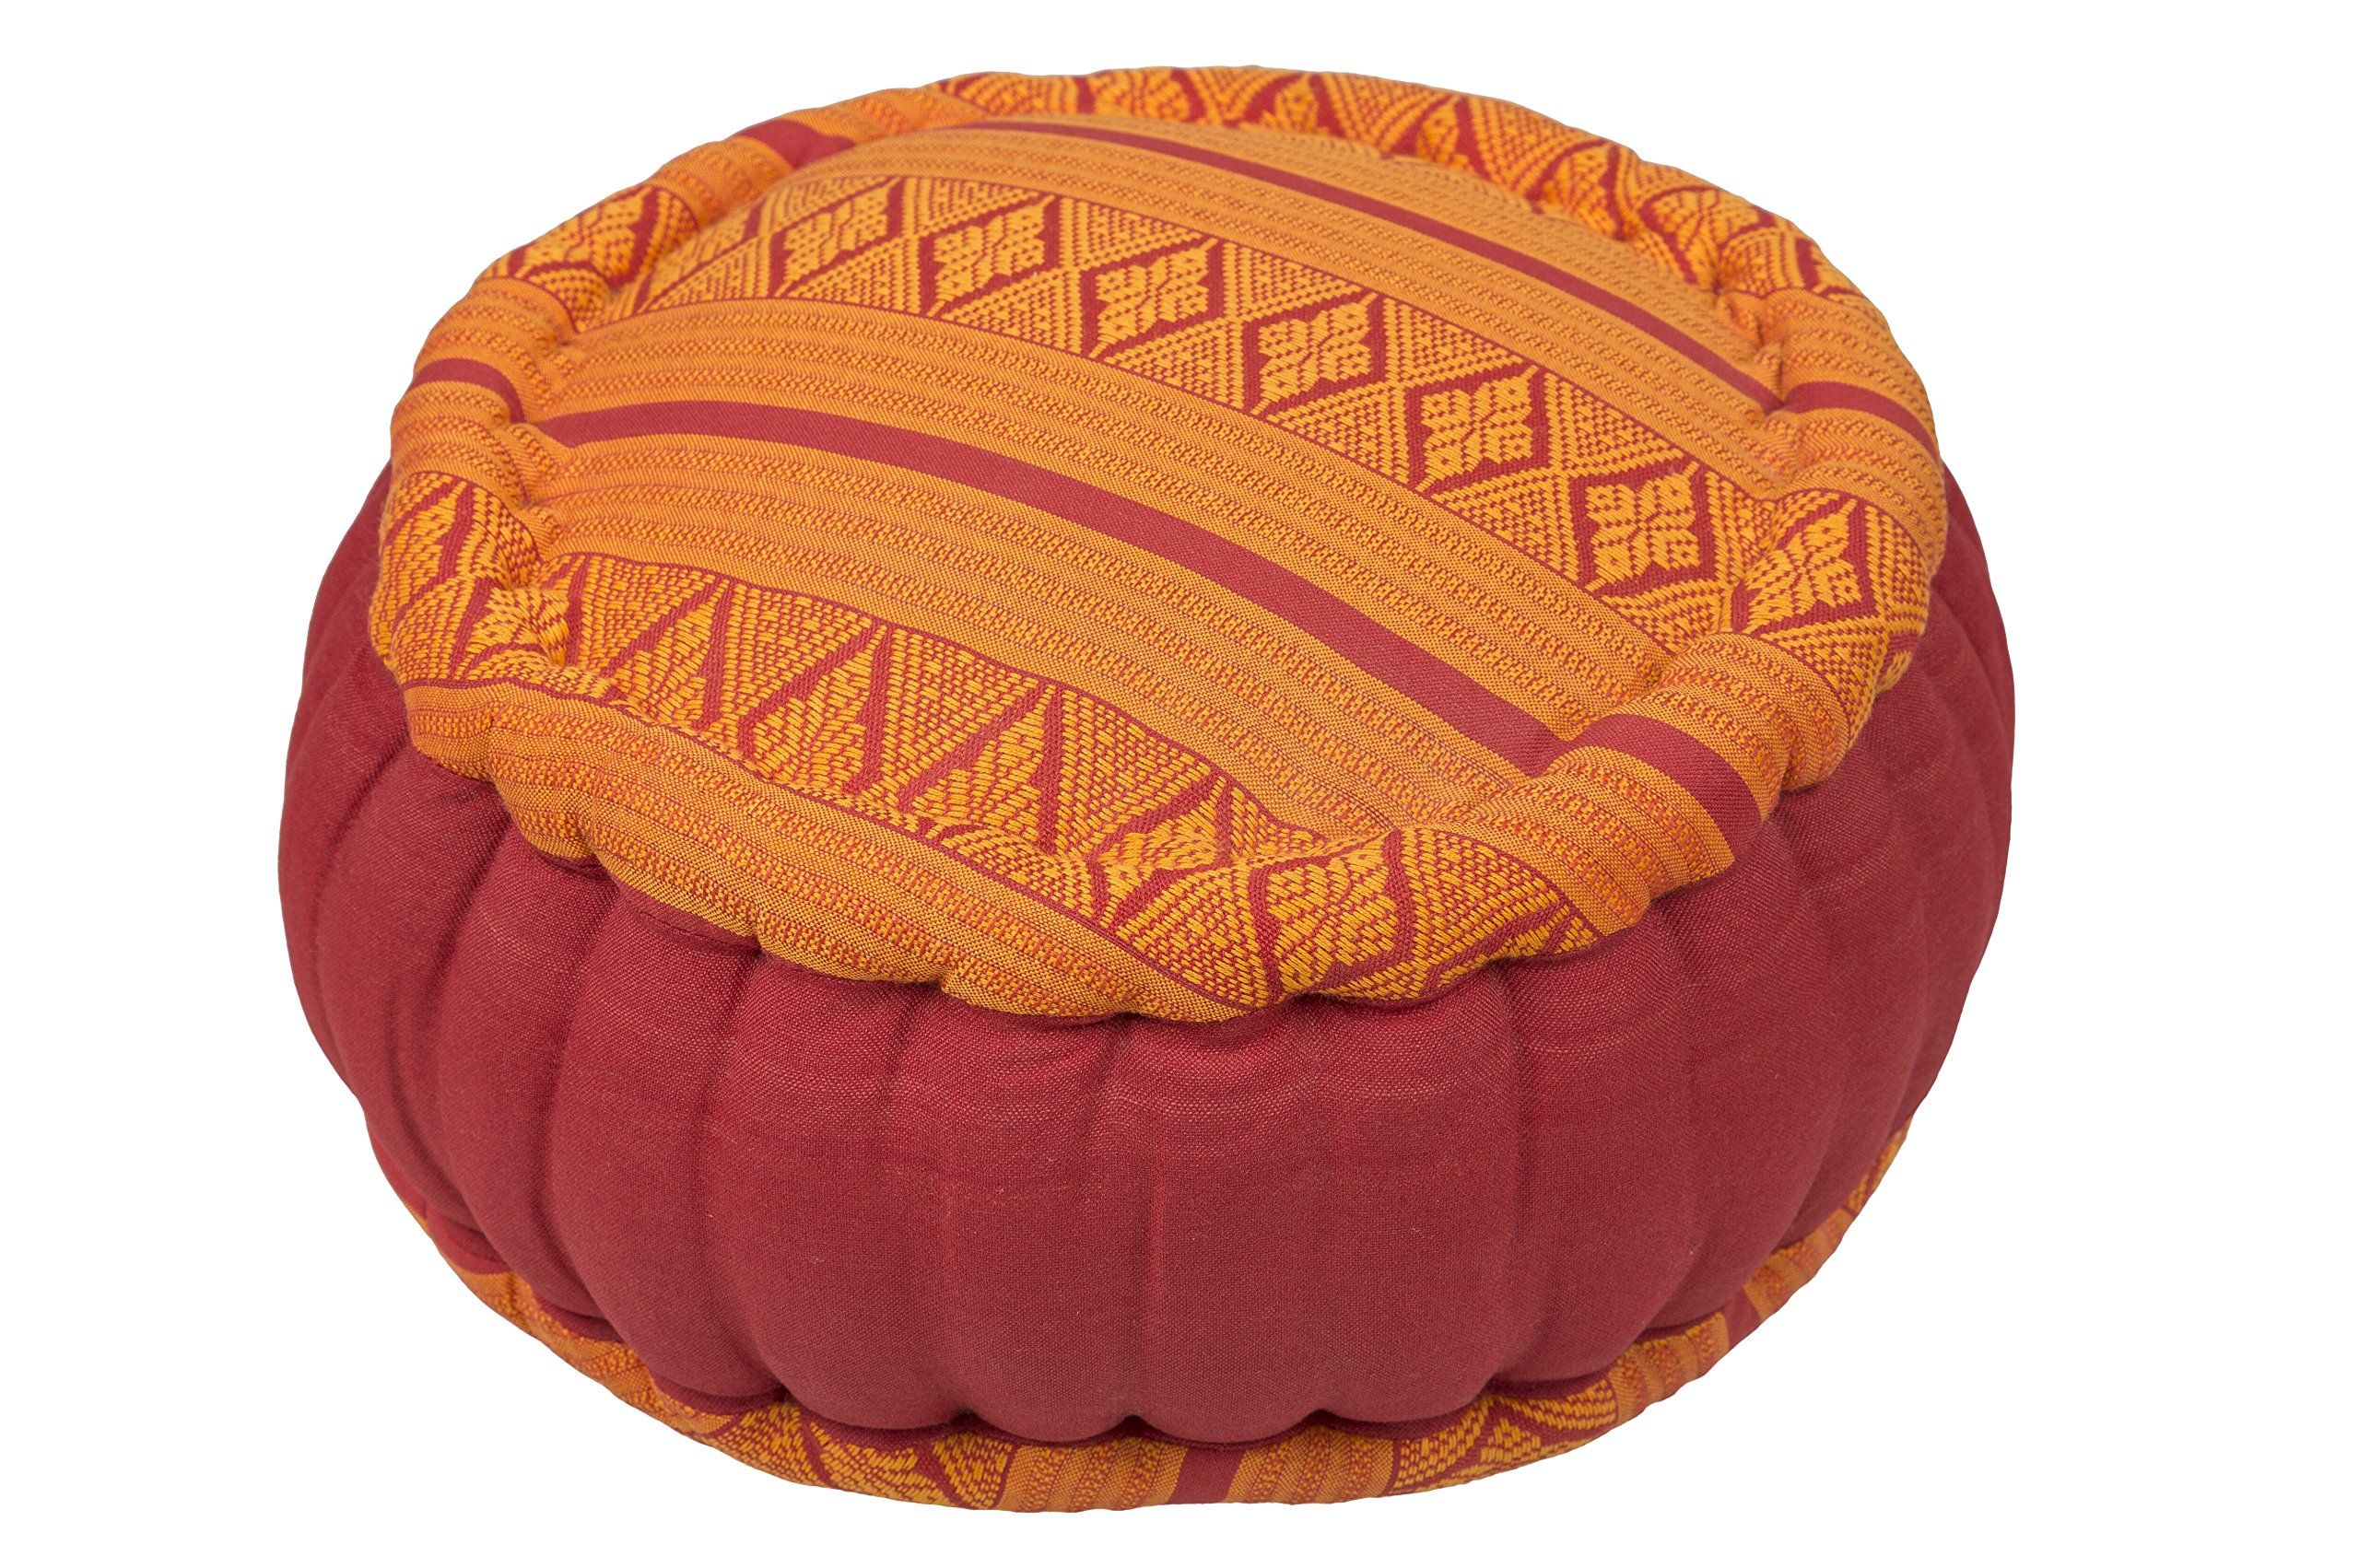 Kapok Dreams ™ Zafu Round Meditation Cushion 100% Kapok, Thai Design Pillow Orange & Red